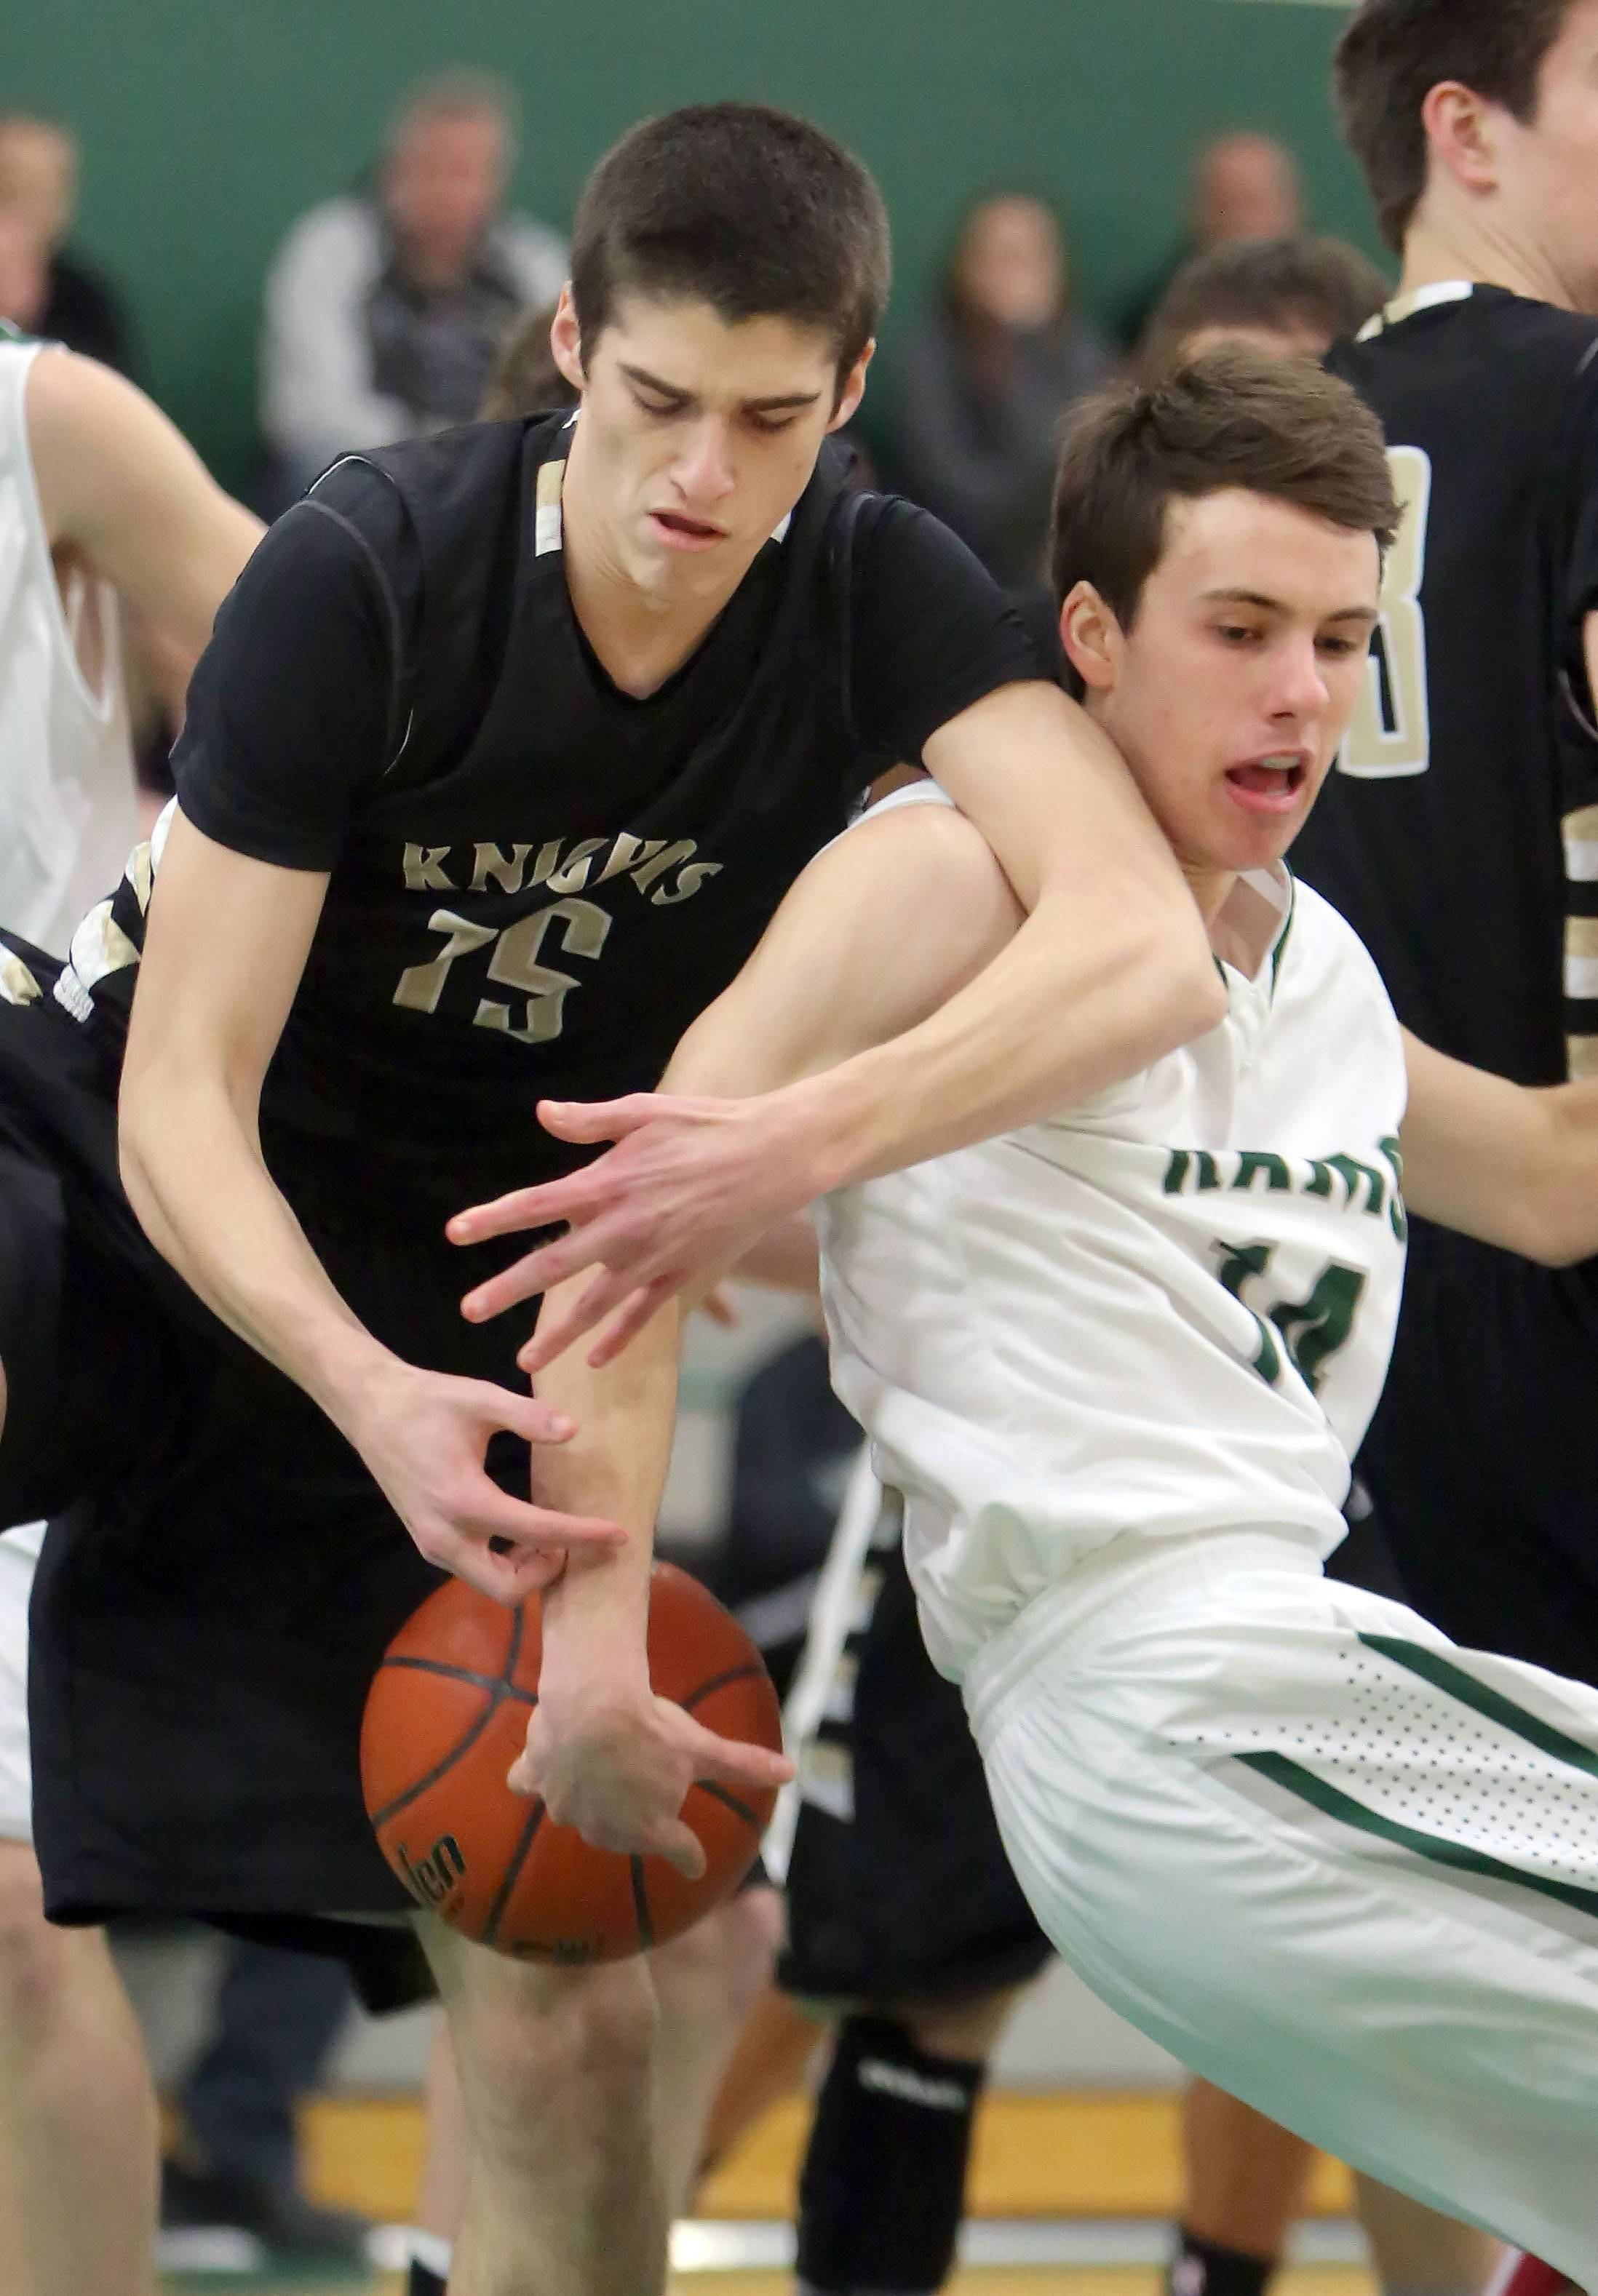 Grayslake North's Dom DiProva, left, and Grayslake Central's Charlie Anderson scramble for a rebound.